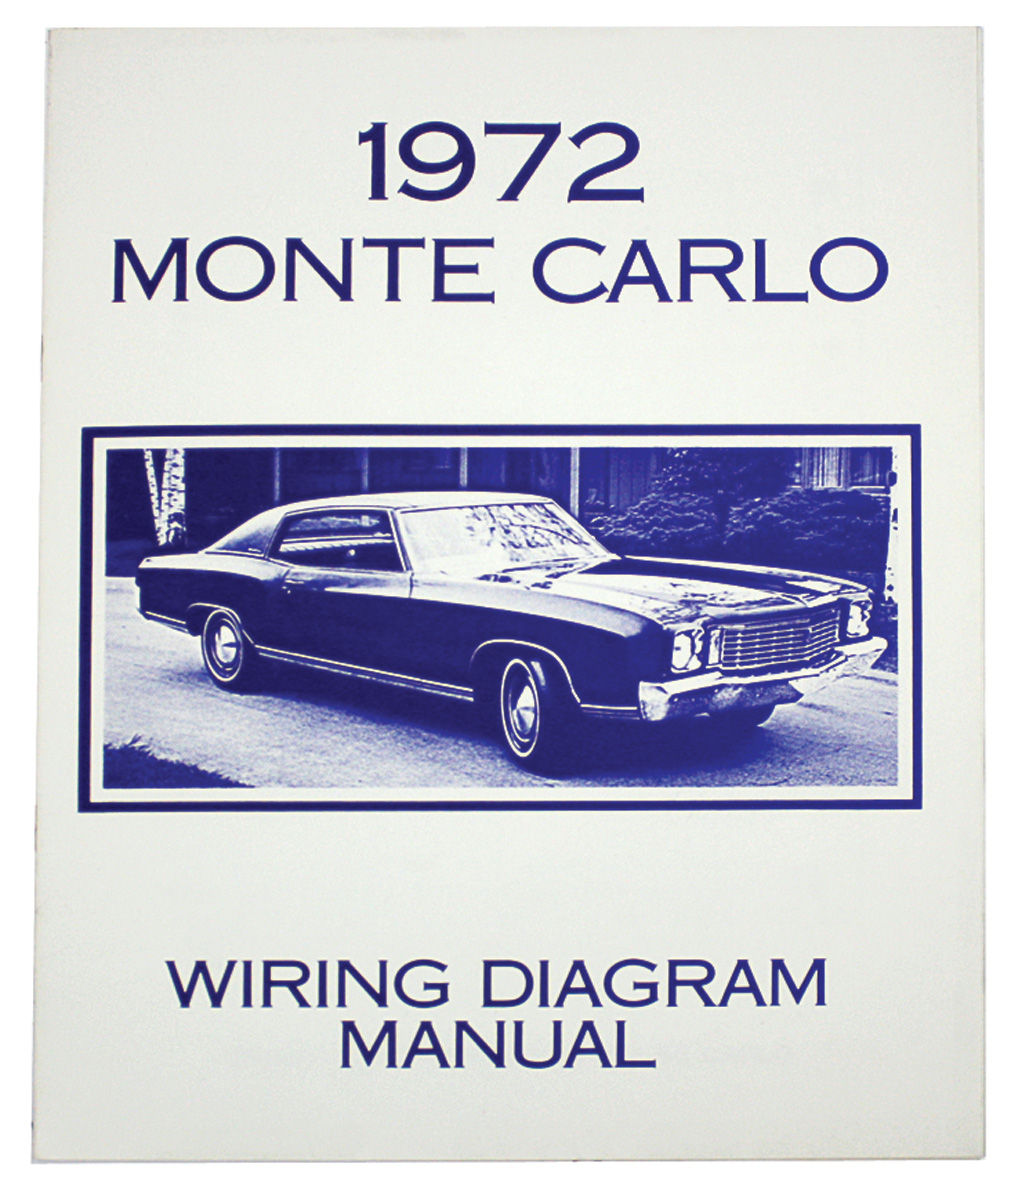 1972 Monte Carlo Fuse Box Diagram Detailed Schematics 72 Chevy Wiring Manuals Opgi Com 1969